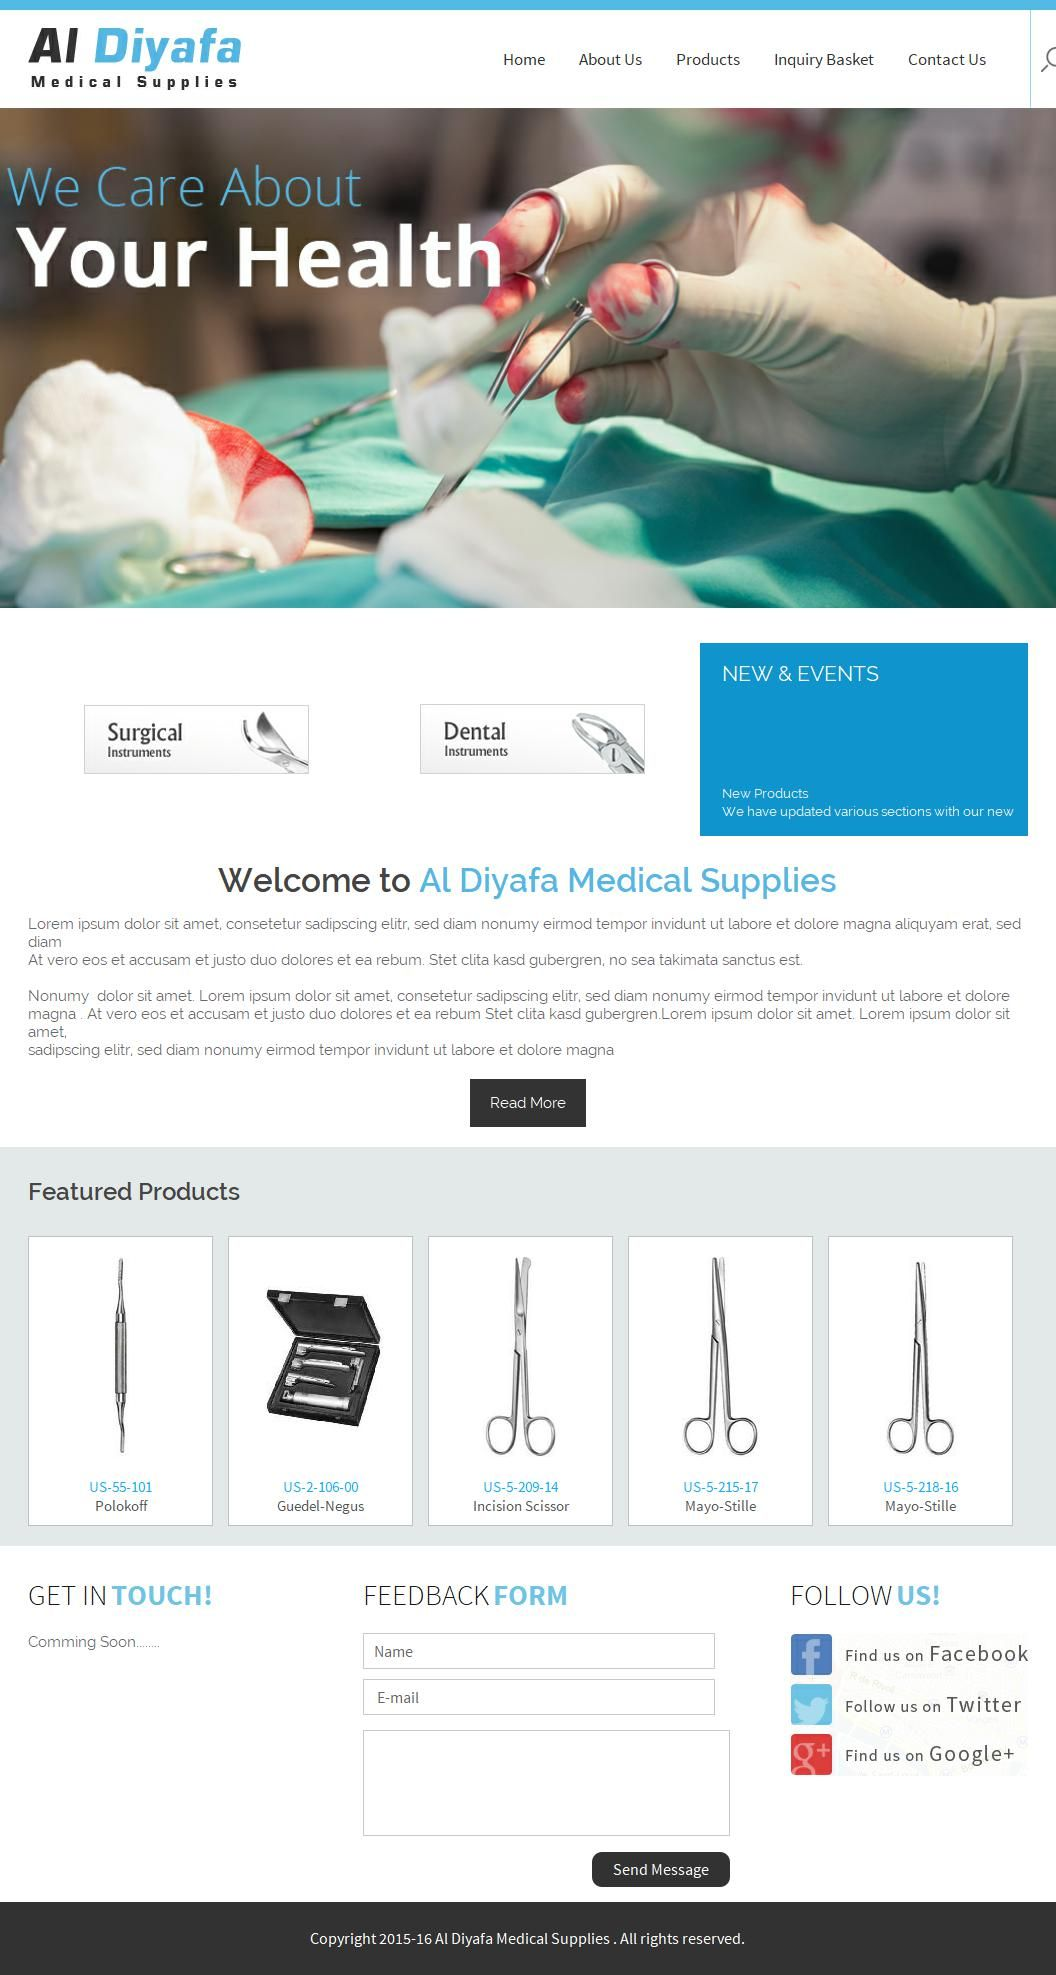 Al Diyafa Medical Supplies Trading Company Majara Plaza, 1/4, Saeed